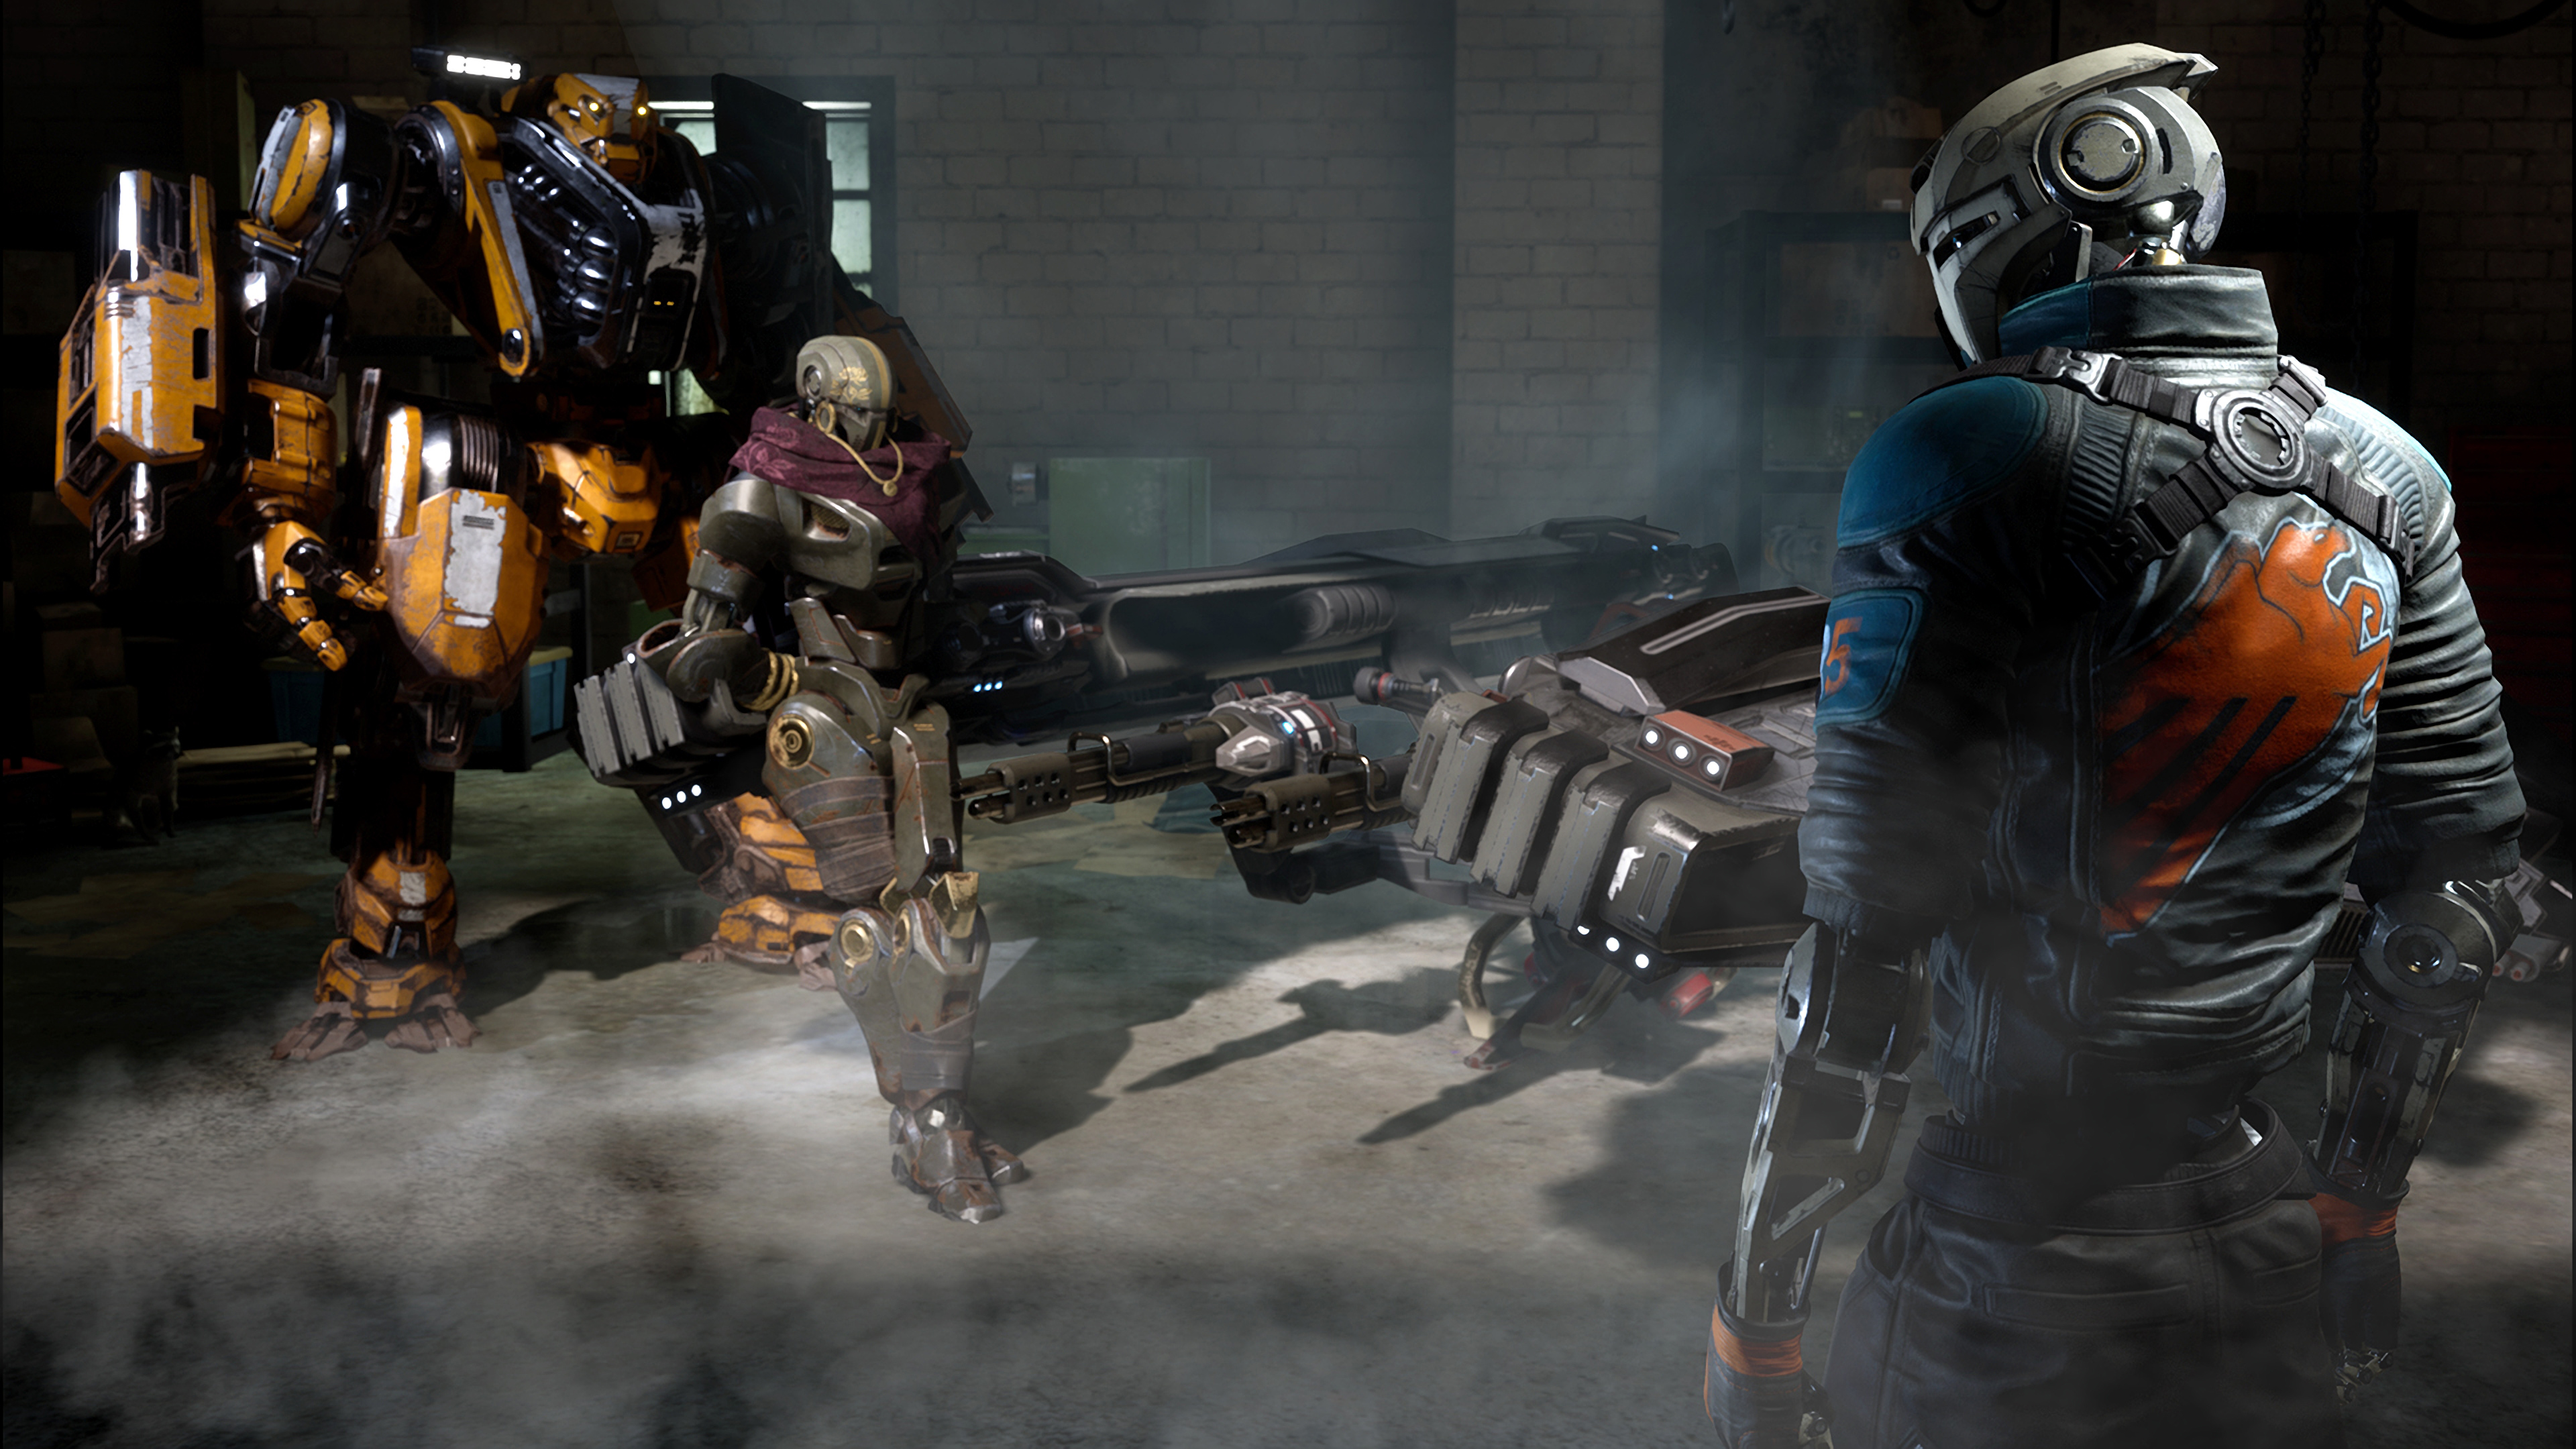 Disintegration 2020 Hd Games 4k Wallpapers Images Backgrounds Photos And Pictures